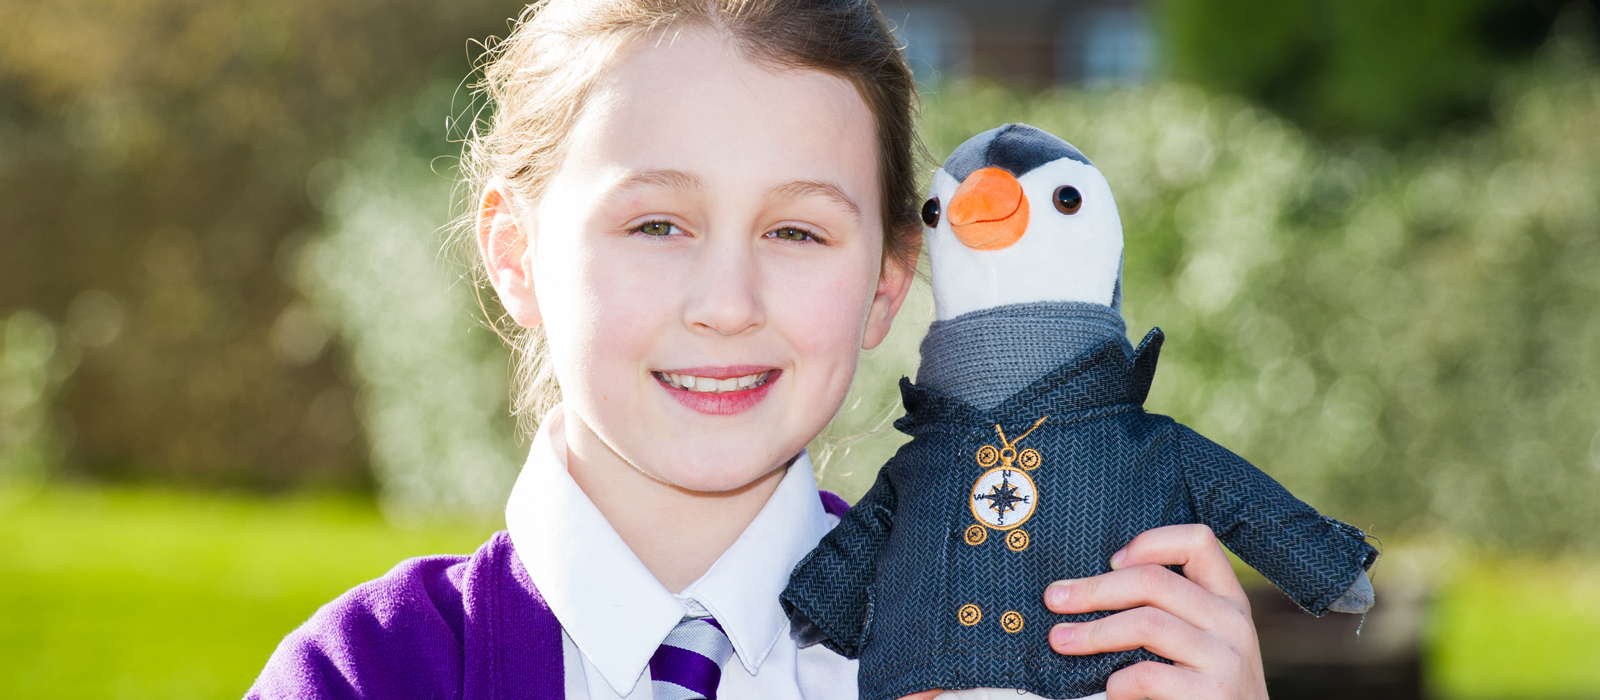 Young girl holding British Gas toy